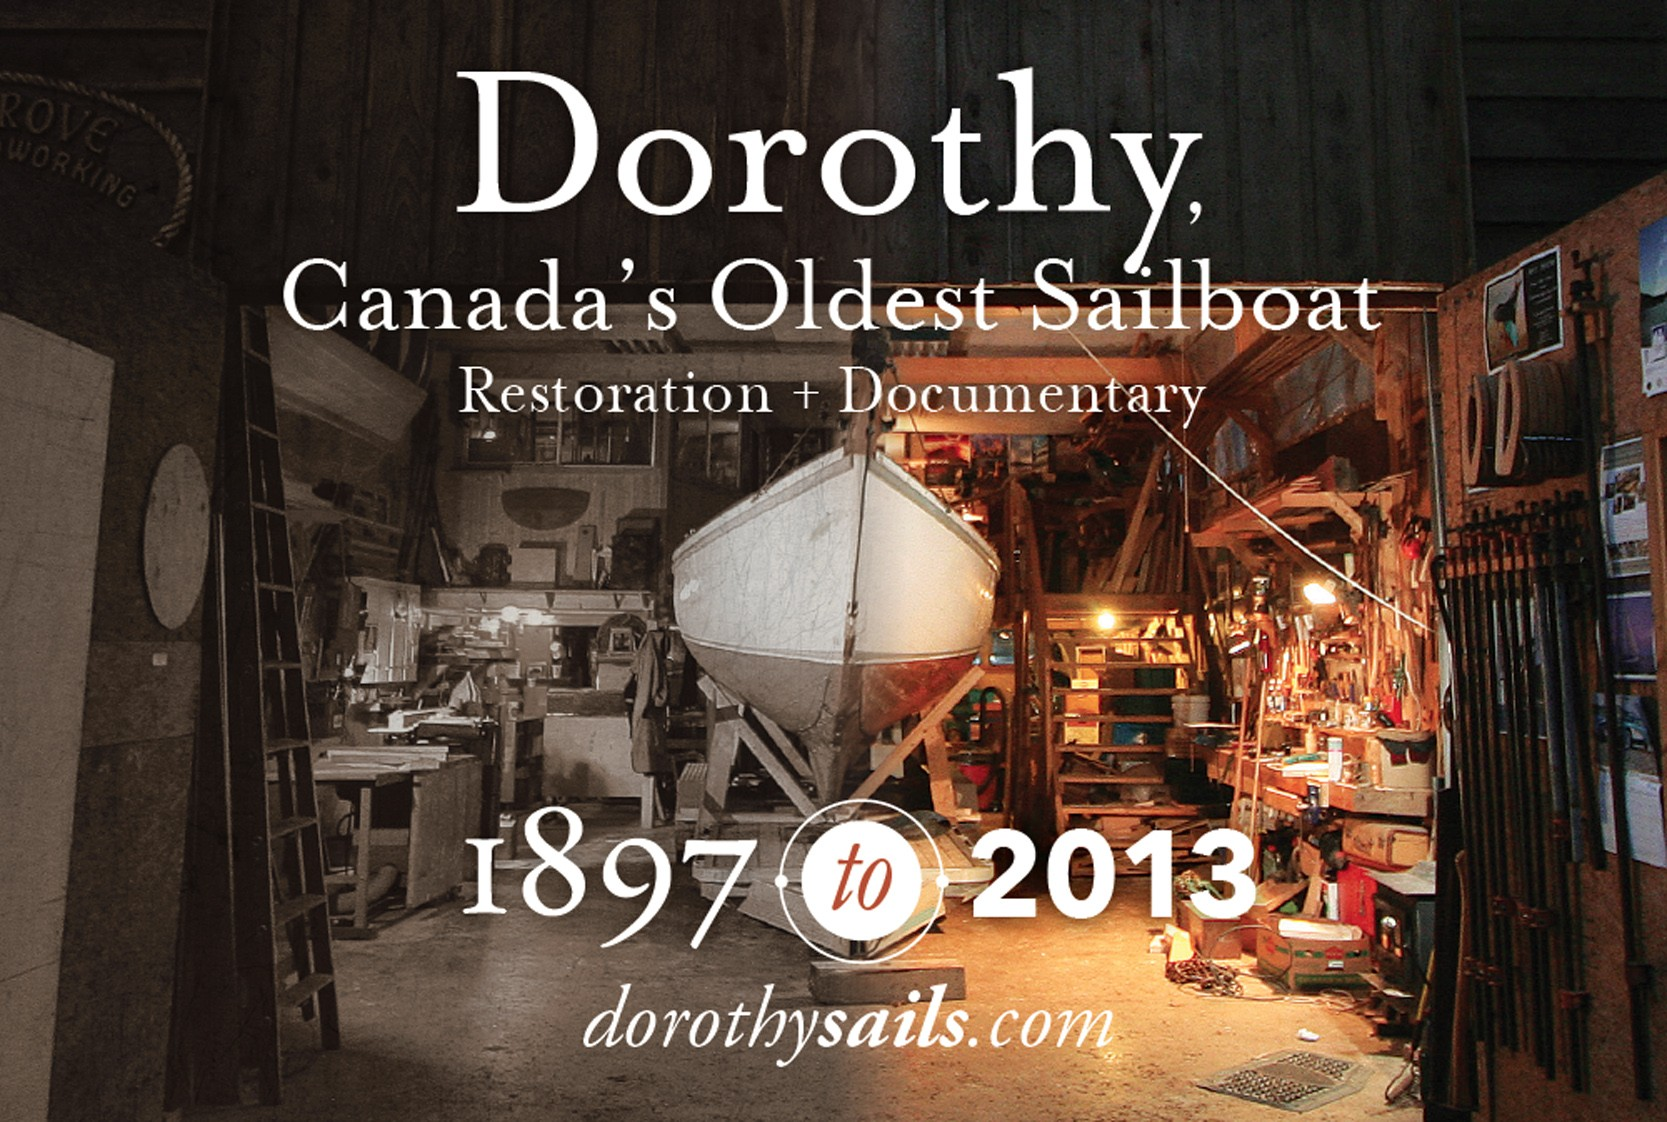 So what's a Dorothy Doc Indiegogo, anyway?